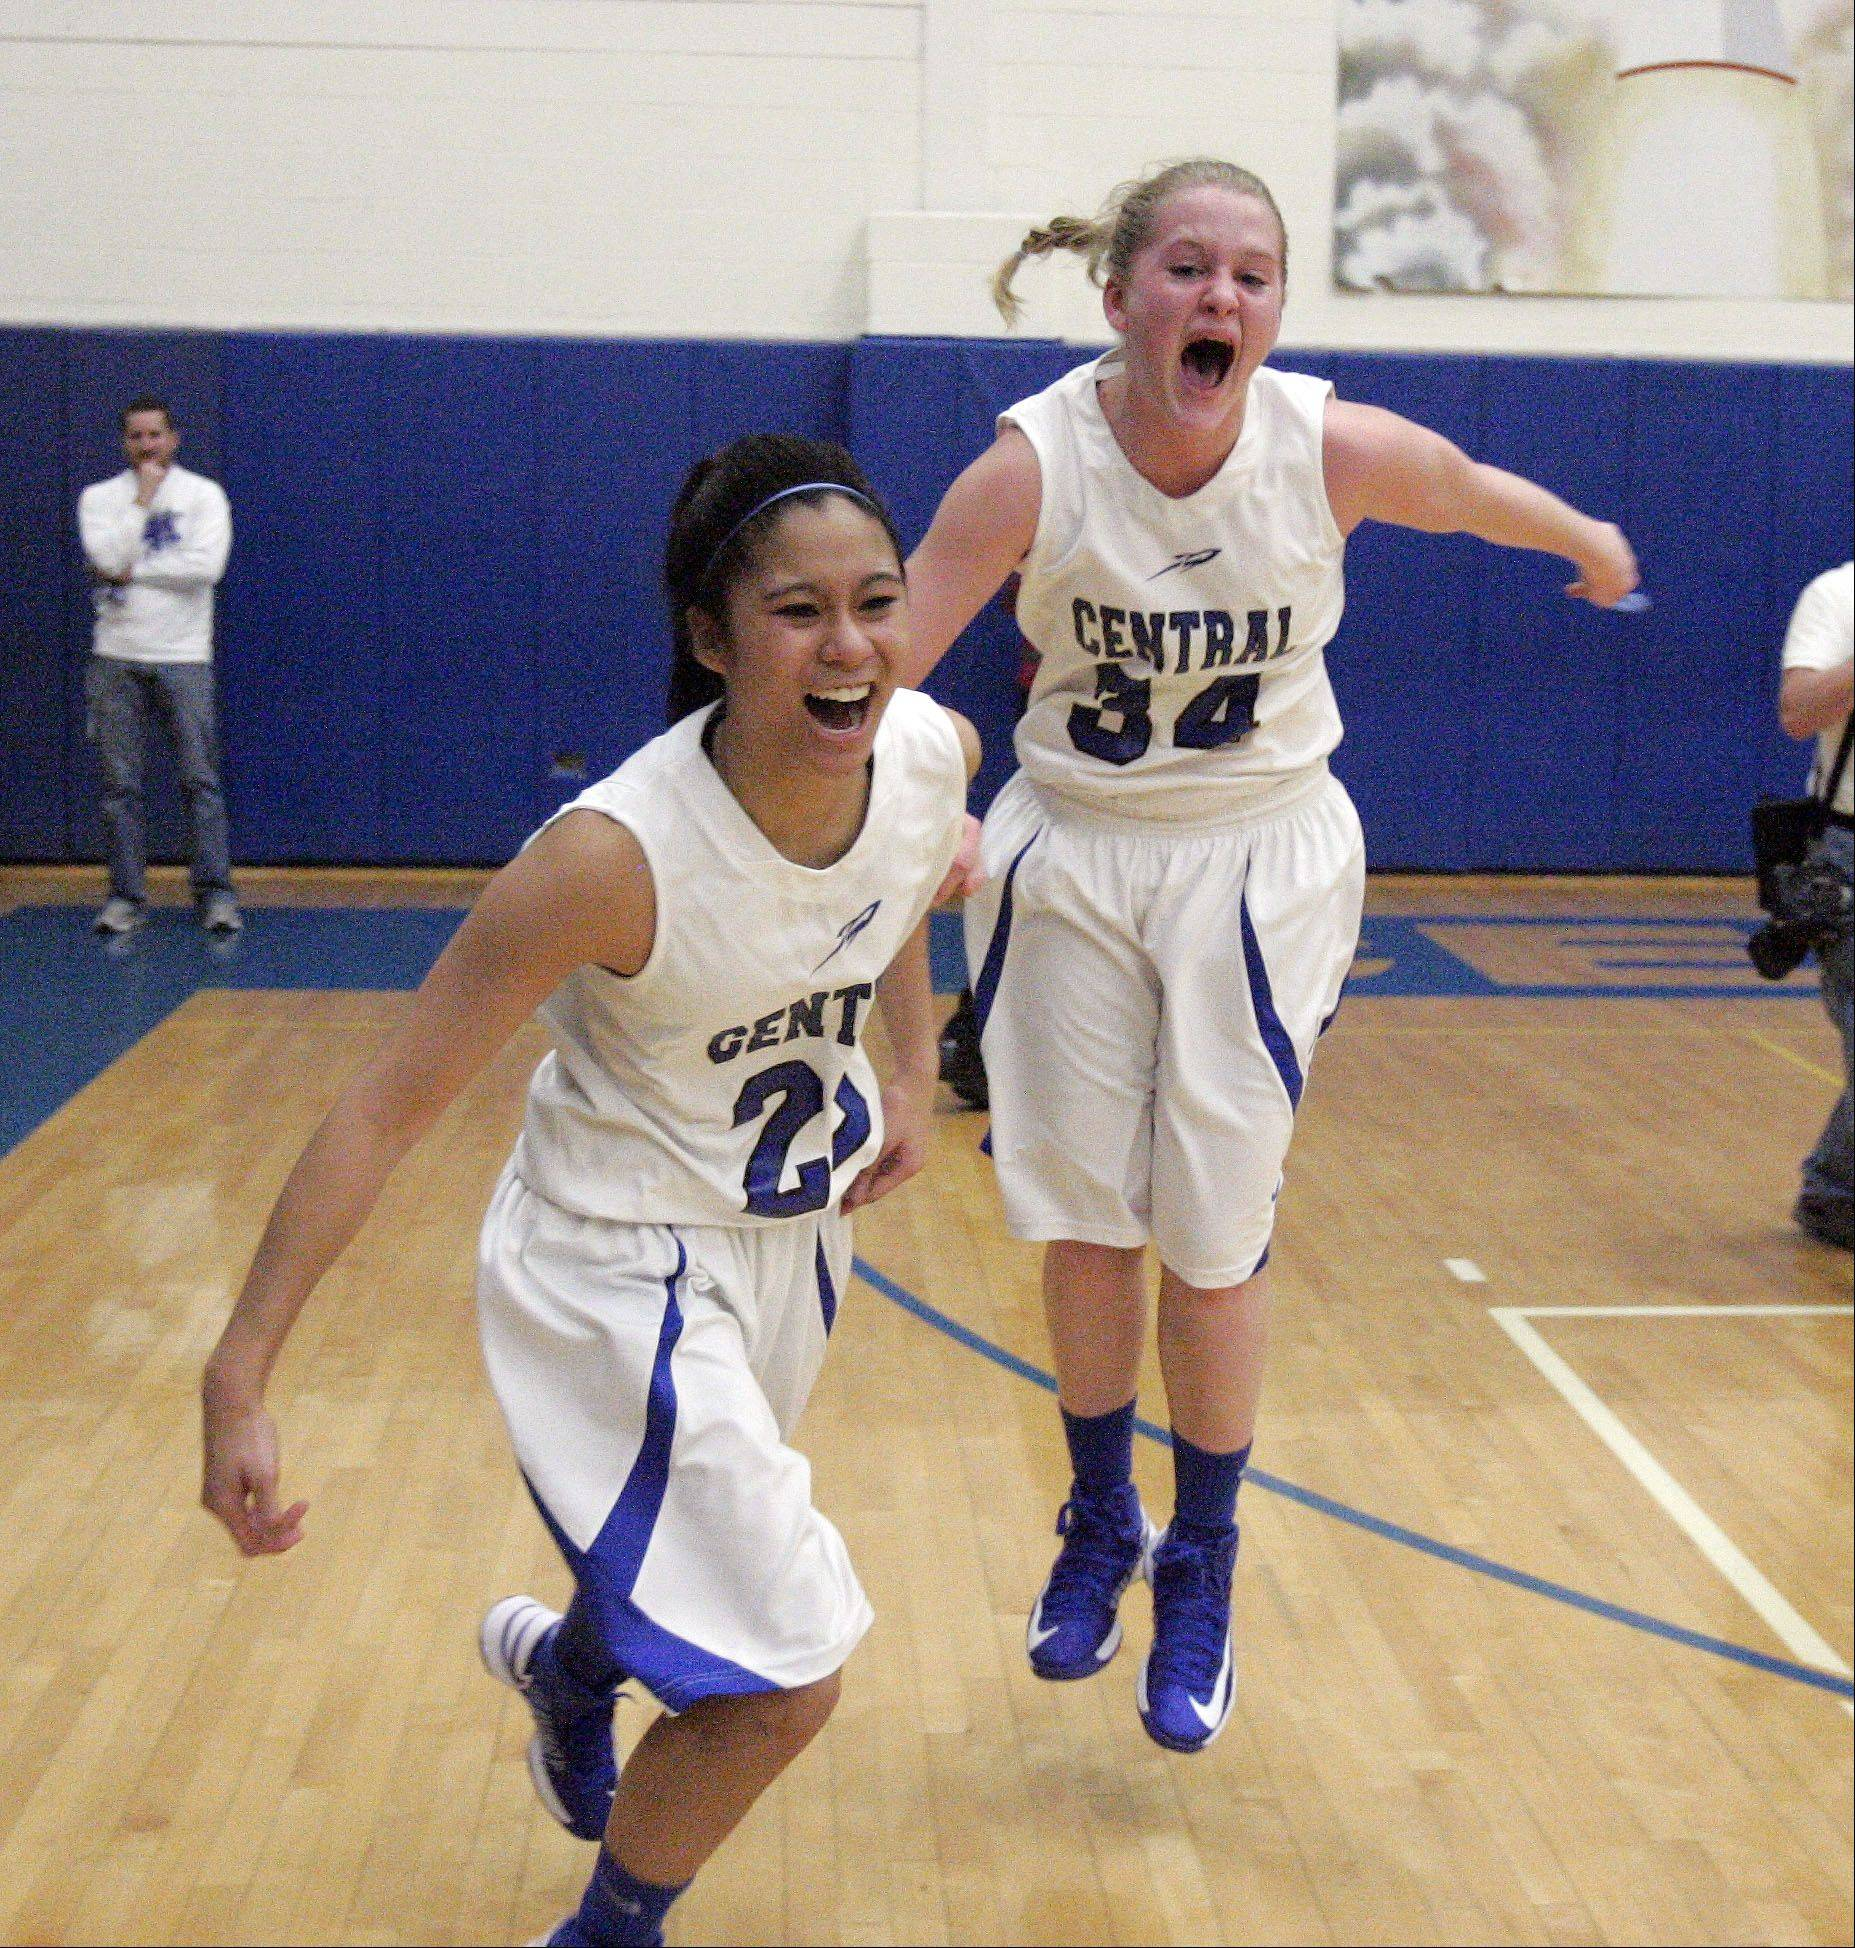 Burlington Central's Camille Delacruz (23) and Samantha Pryor celebrate after Burlington Central beat Plano 38-34 for the IHSA Class 3A regional girls basketball championship Friday.